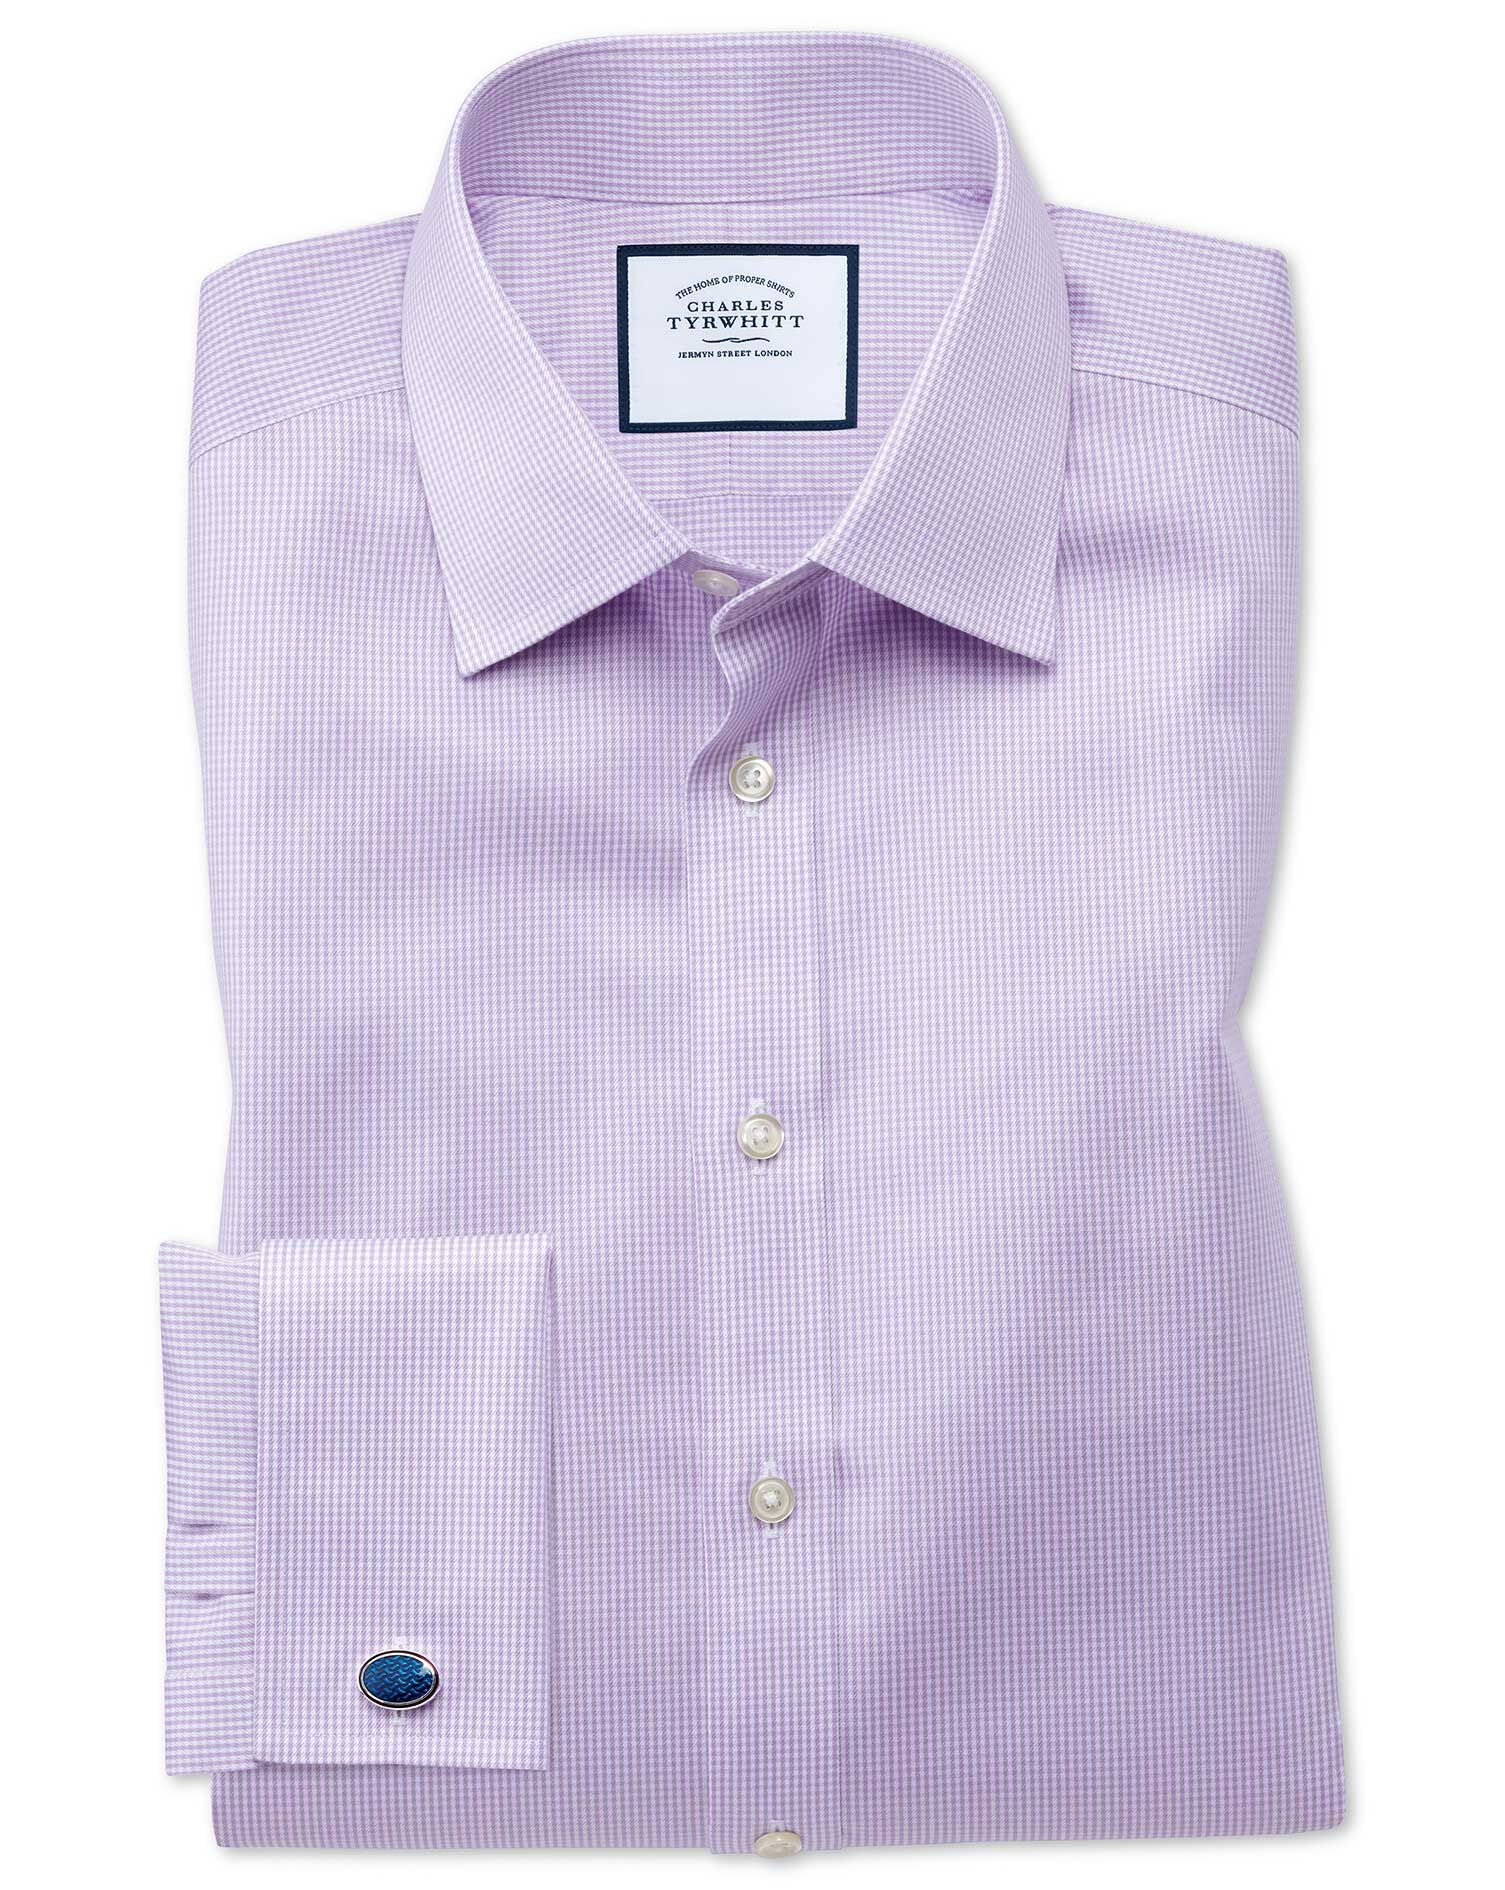 Classic Fit Non-Iron Puppytooth Lilac Cotton Formal Shirt Single Cuff Size 18/37 by Charles Tyrwhitt